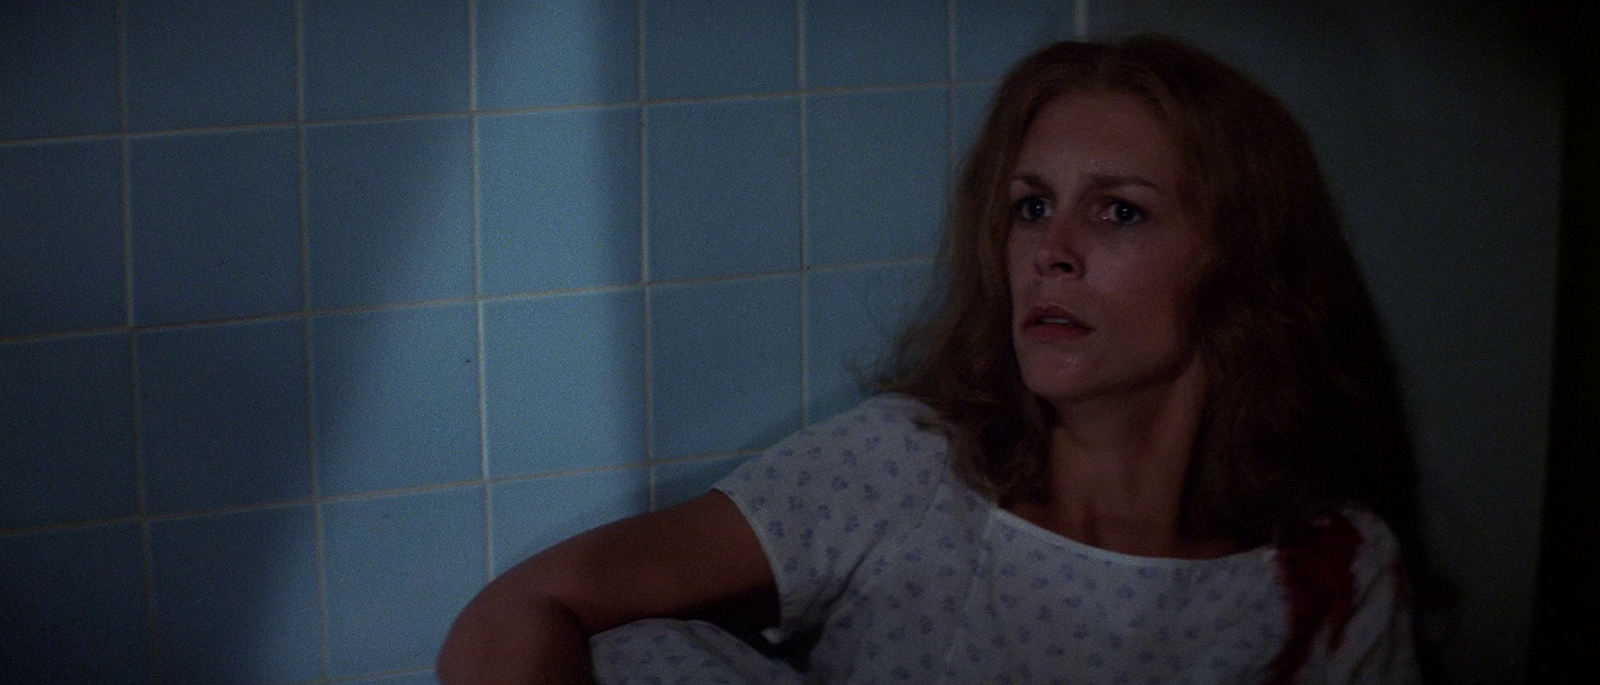 Jamie Lee Curtis returns as Laurie Strode in Halloween II